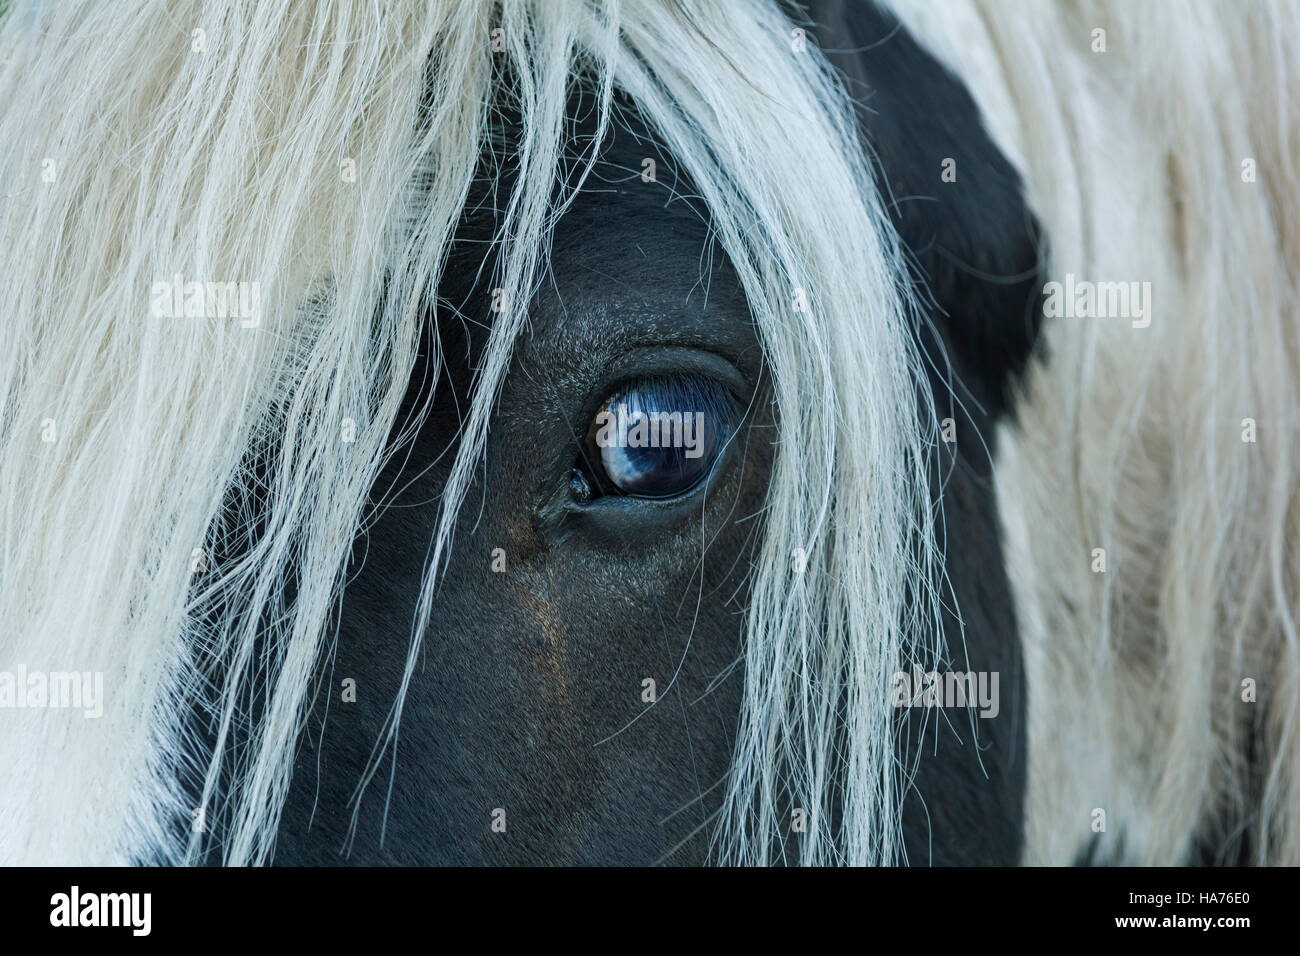 The staring eye of a traveller's horse with long mane, looking curious or cautious - Stock Image